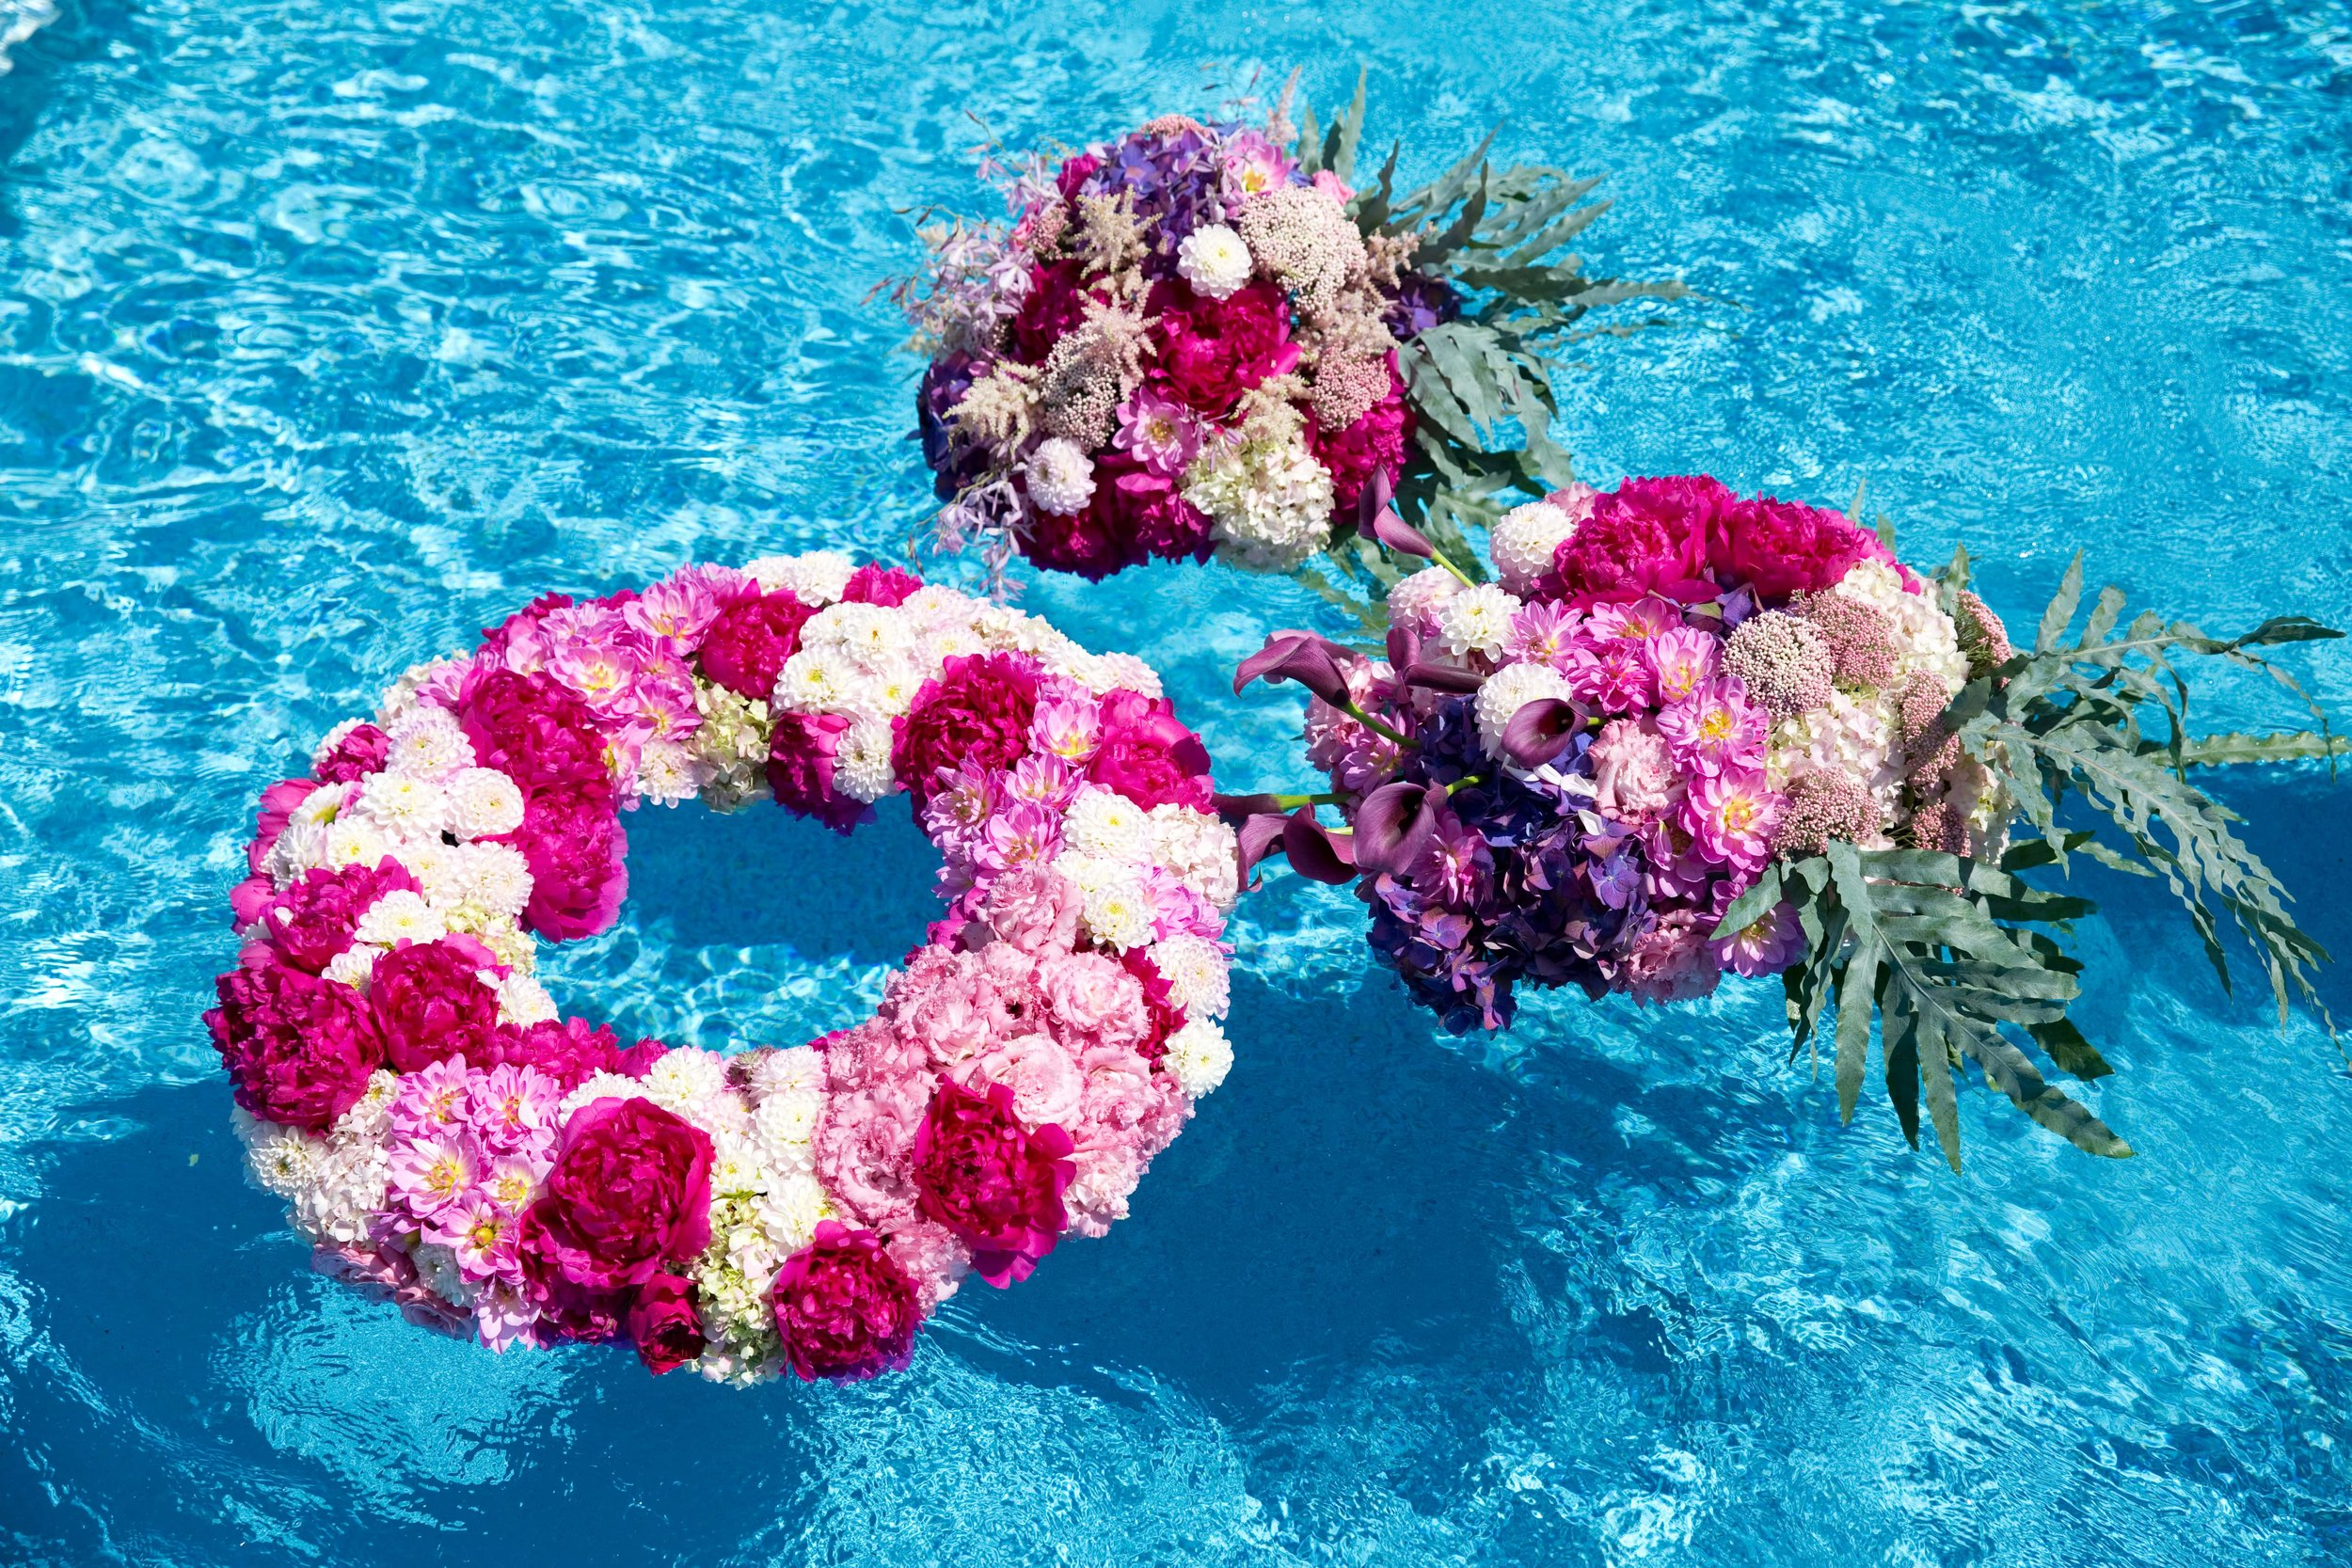 4782b-floatingfloralrings-bfloralfloatingfloralrings-bfloral.jpg